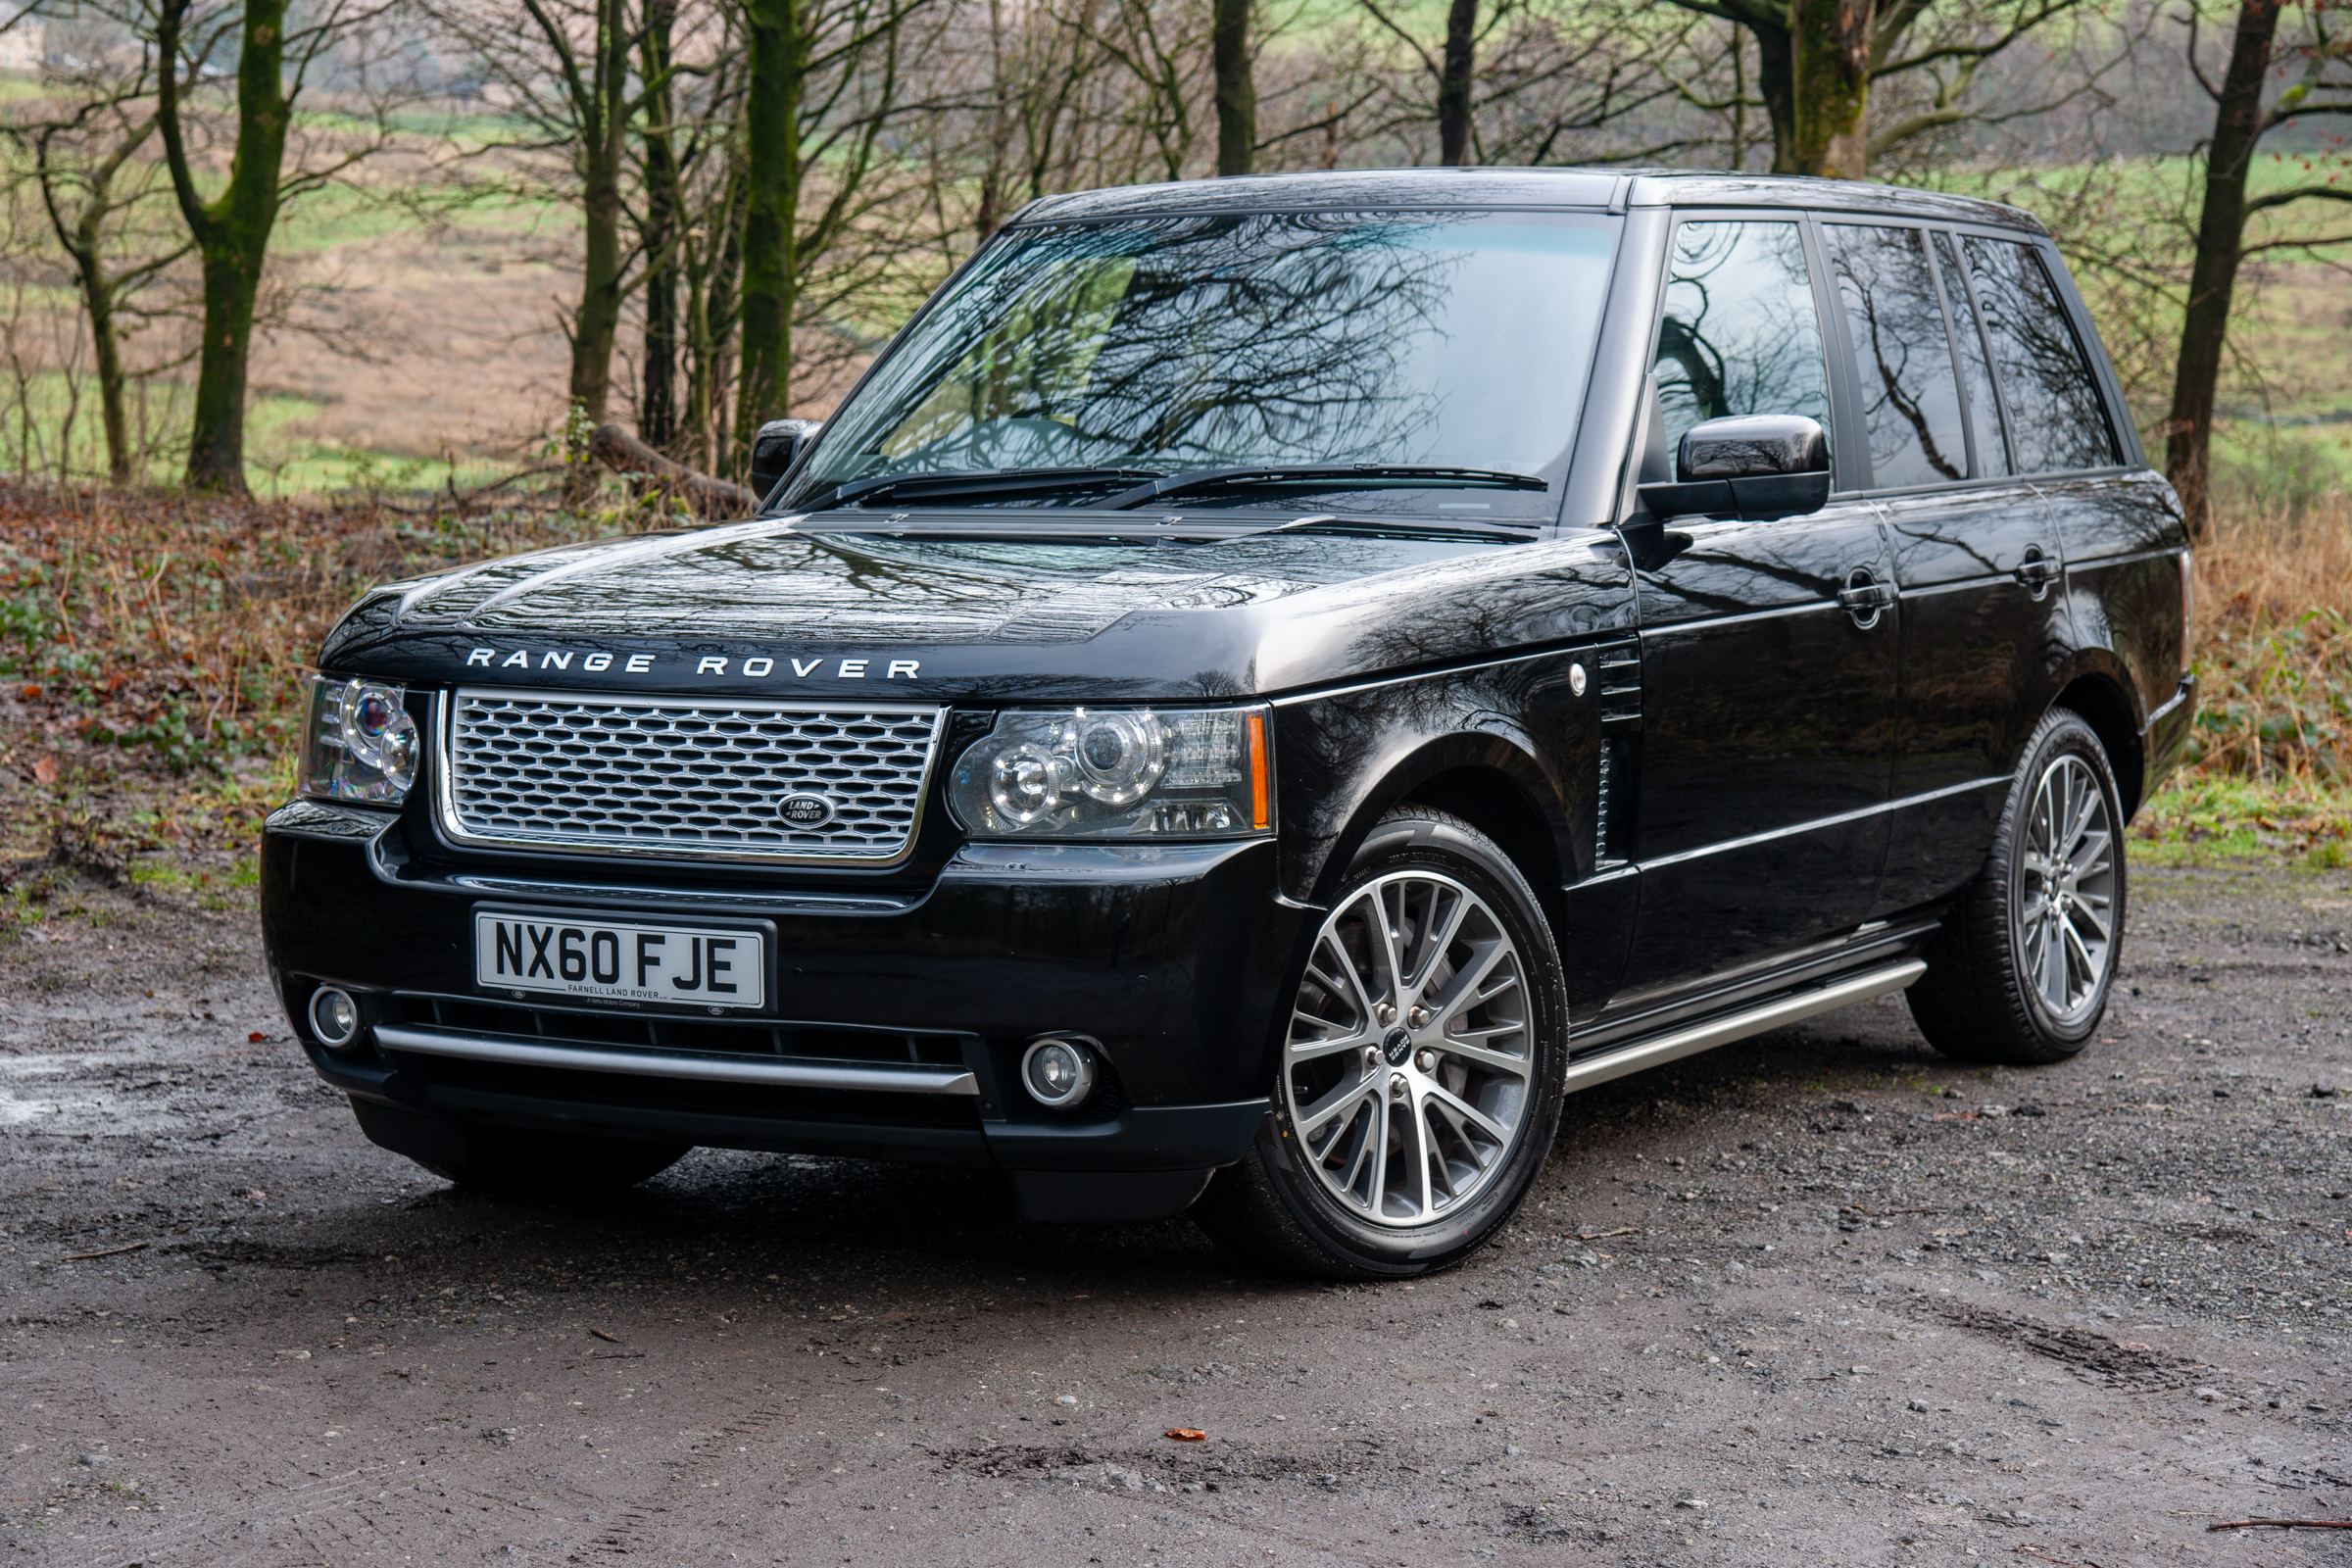 2011 RANGE ROVER AUTOBIOGRAPHY BLACK LIMITED EDITION